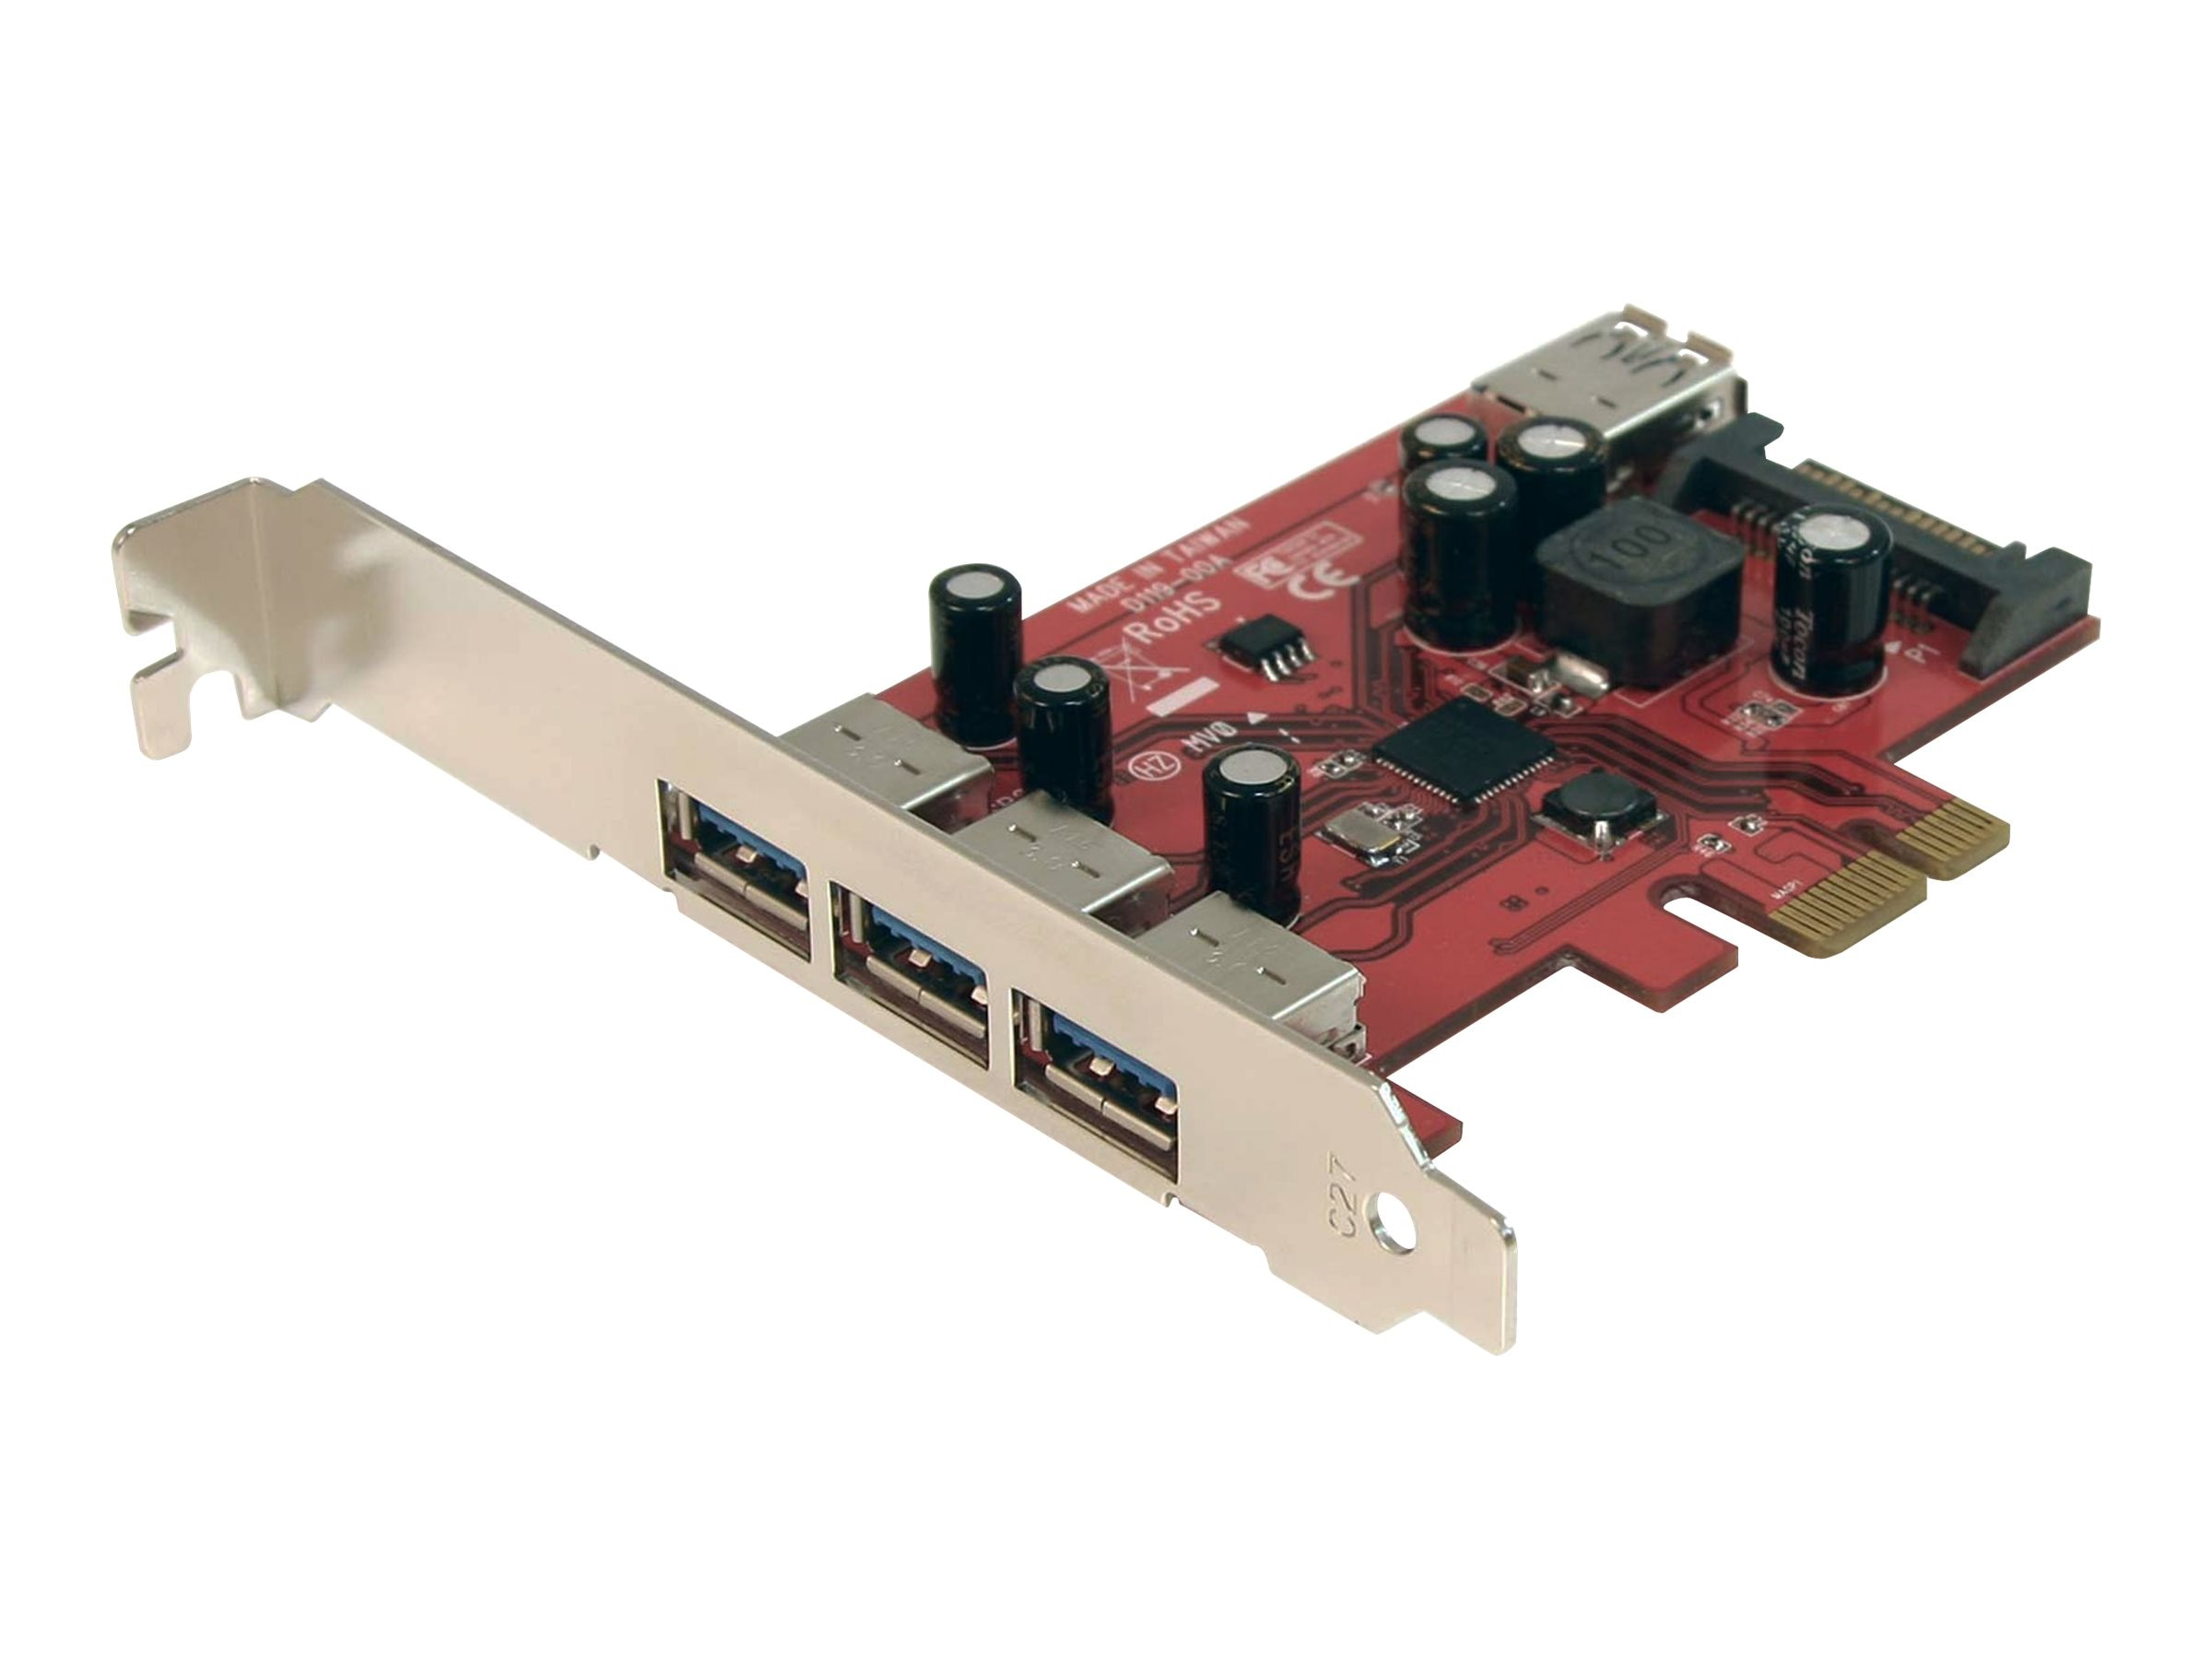 StarTech.com 4-port SuperSpeed USB 3.0 PCI Express Card w  SATA Power, PEXUSB3S4, 13131704, Controller Cards & I/O Boards